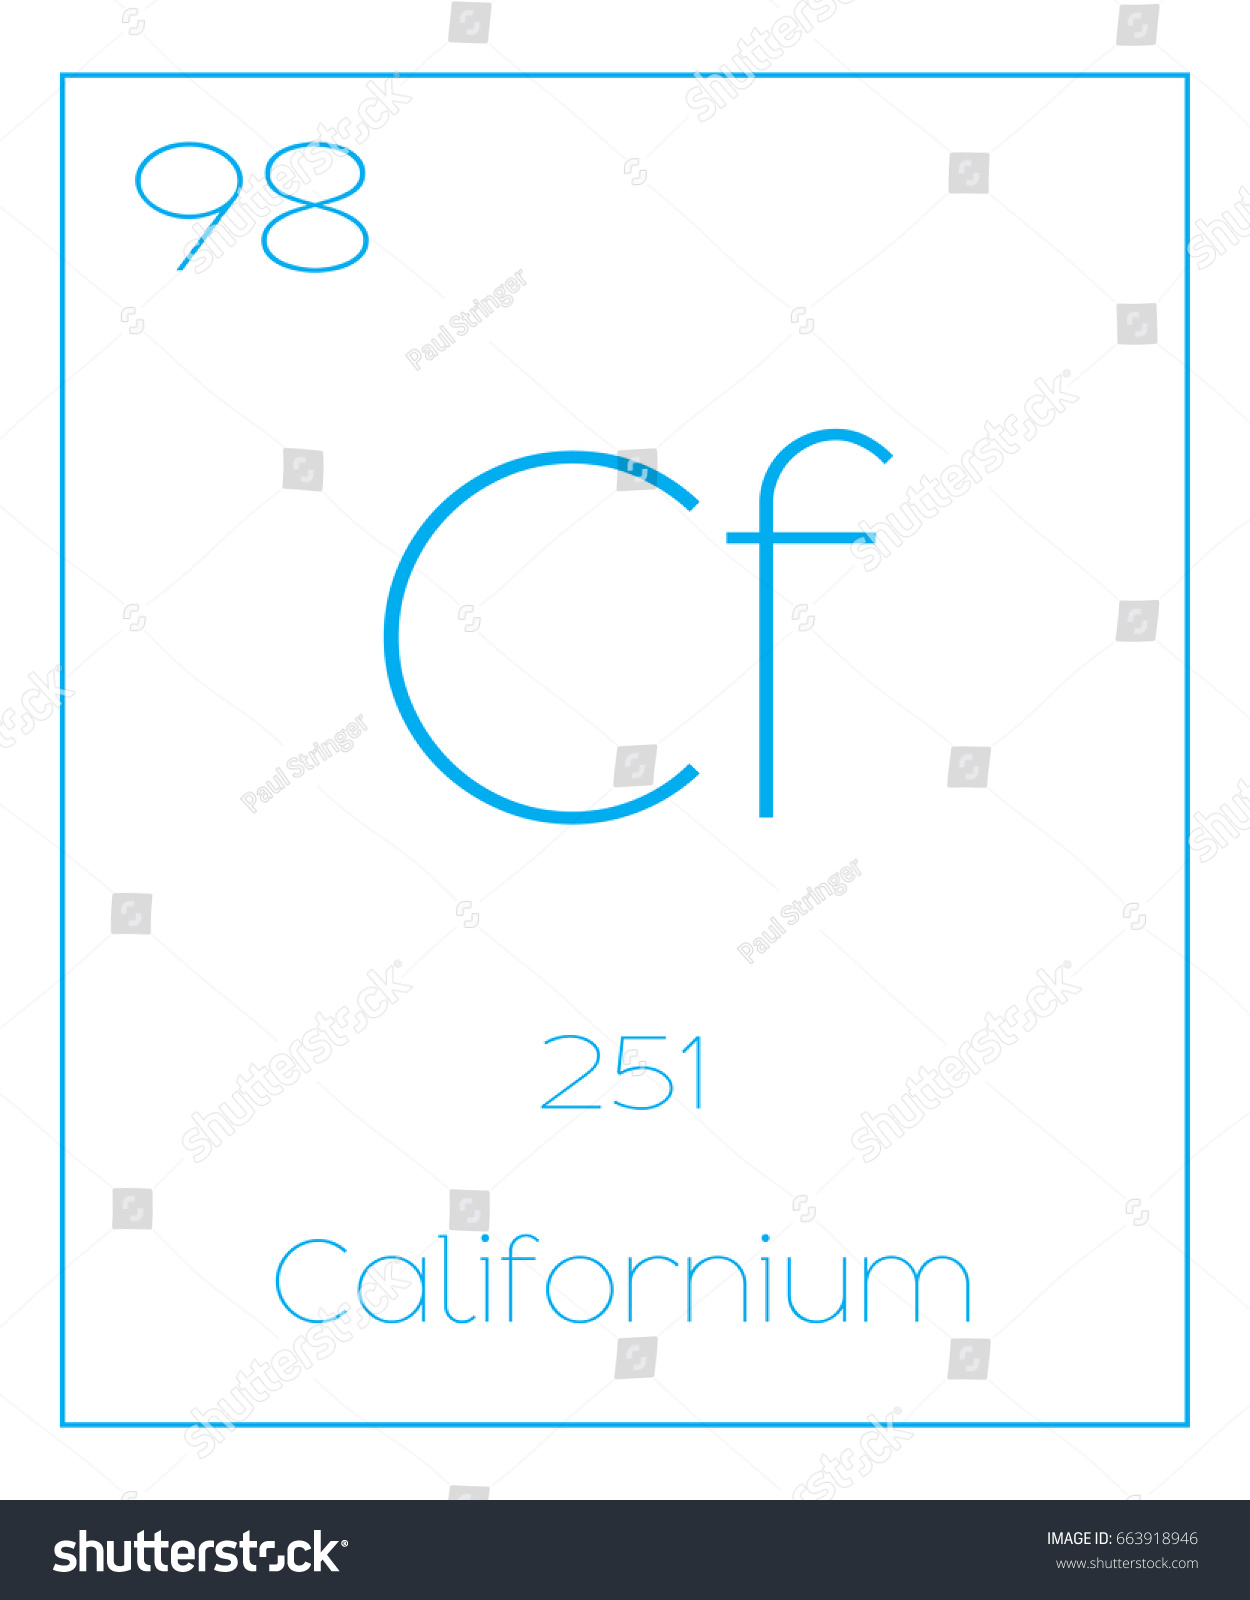 Californium periodic table image collections make your own floor illustration periodic element californium stock vector 663918946 stock vector an illustration of the periodic element californium gamestrikefo Images